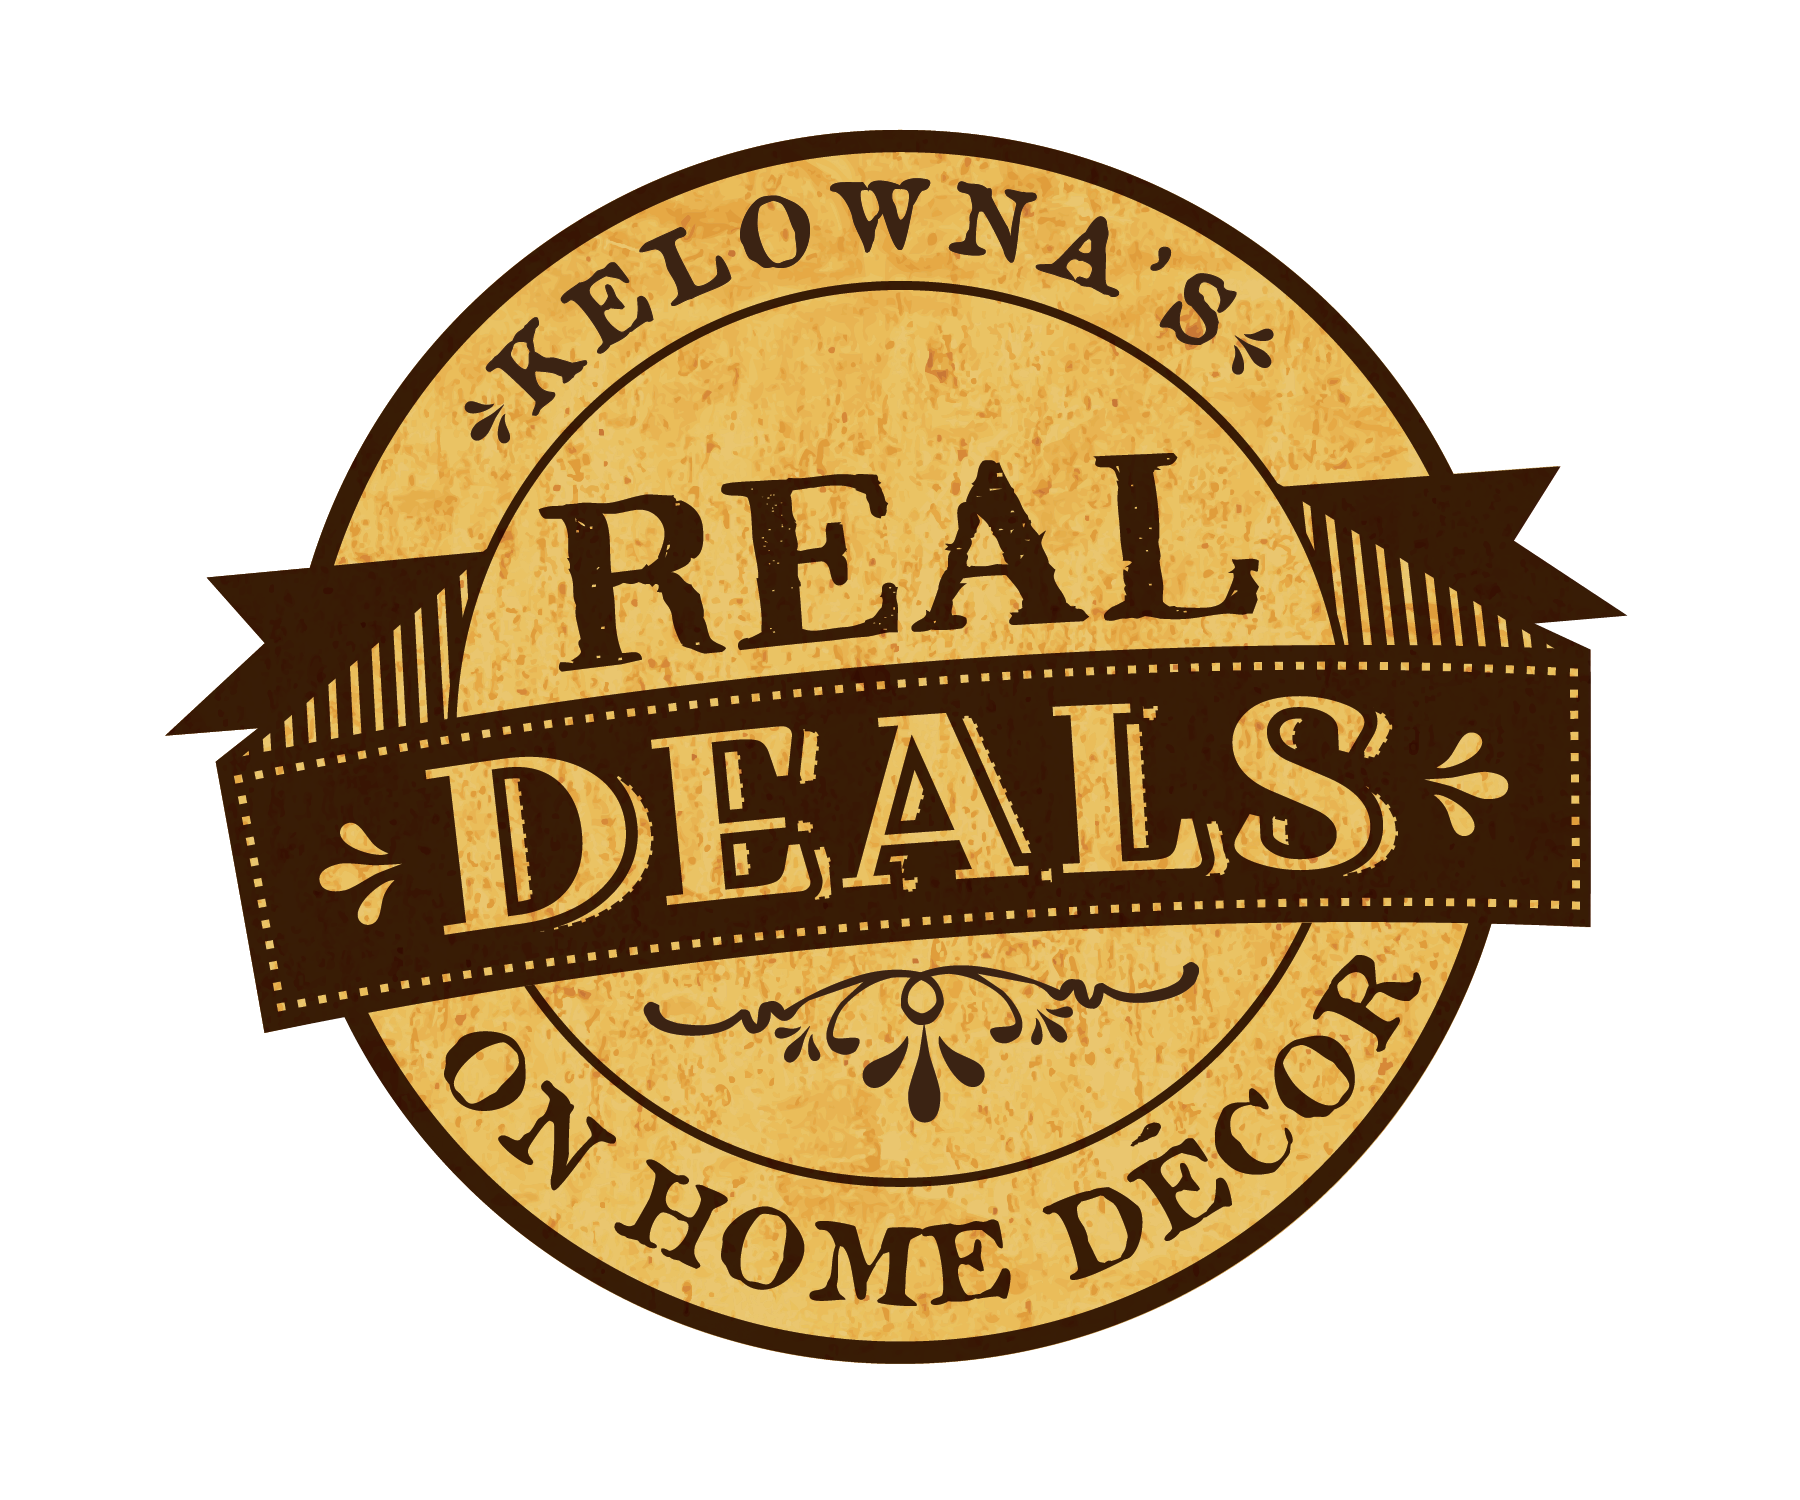 Real Deals Home Decor Franchise Real Deals On Home Decor My City And State